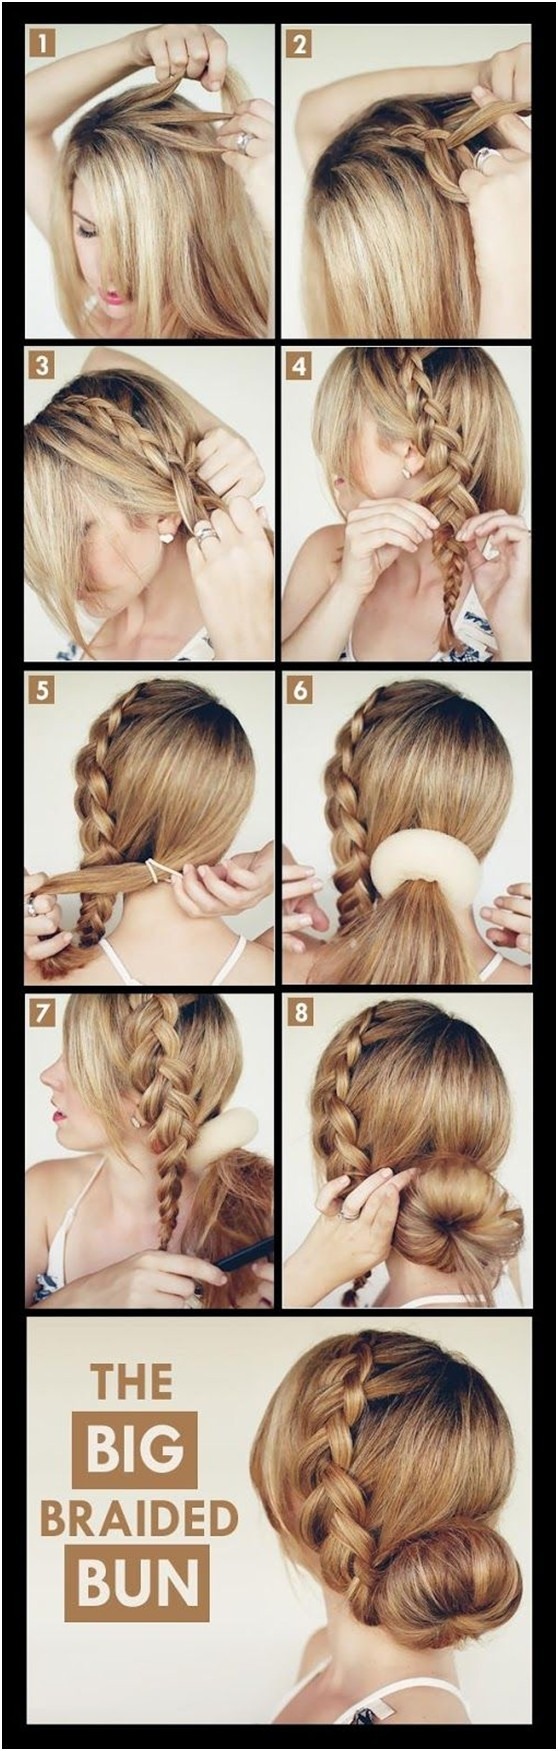 15 braided updo hairstyles tutorials - pretty designs